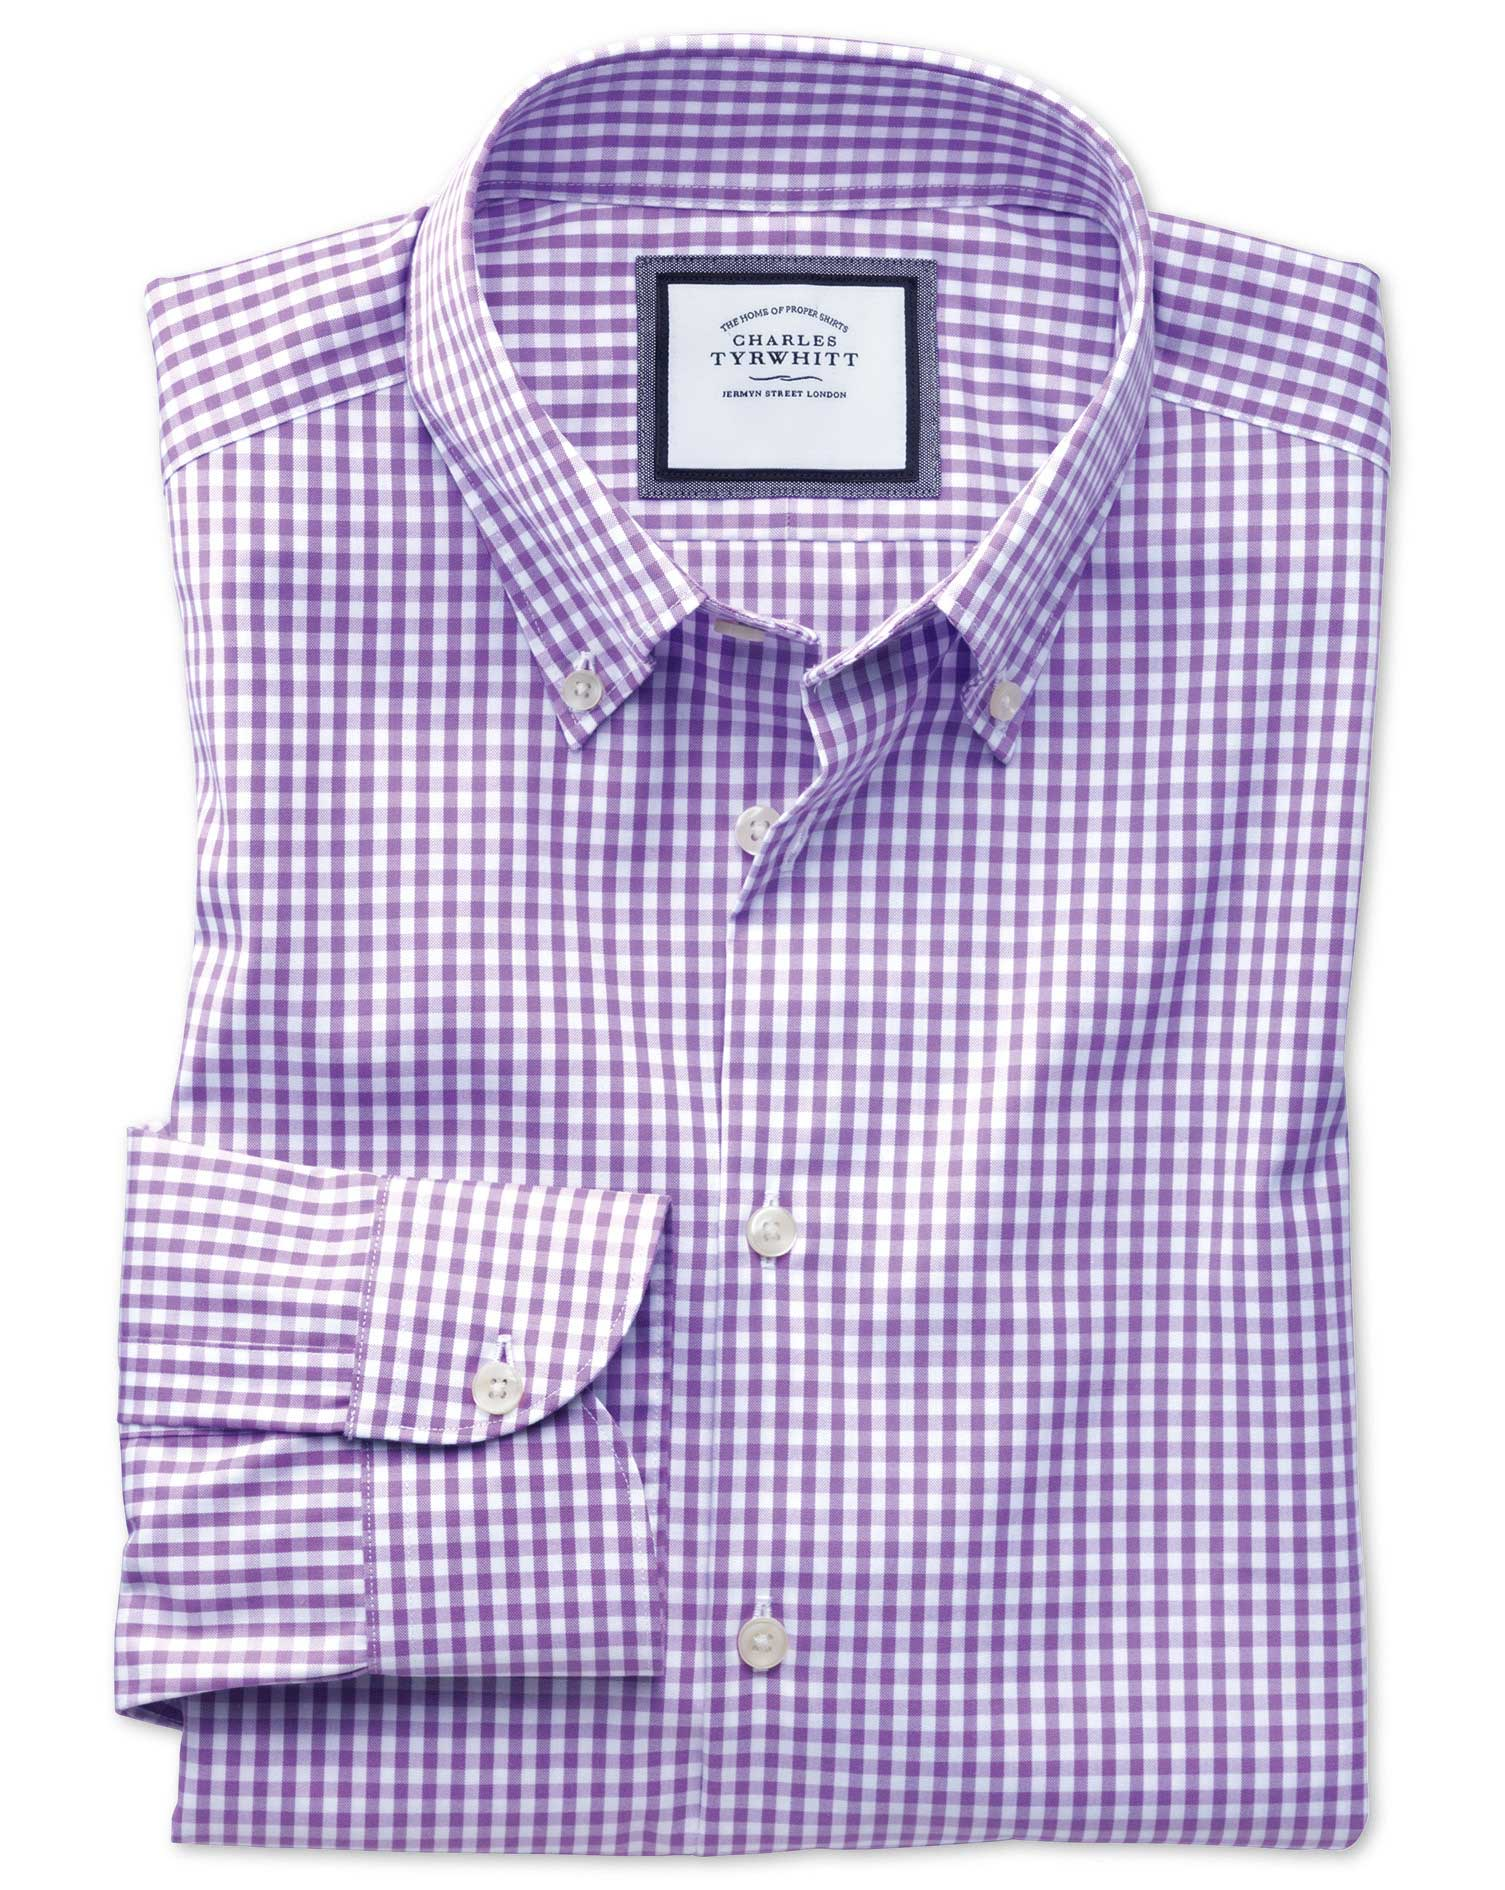 Extra Slim Fit Button-Down Business Casual Non-Iron Lilac Cotton Formal Shirt Single Cuff Size 16/35